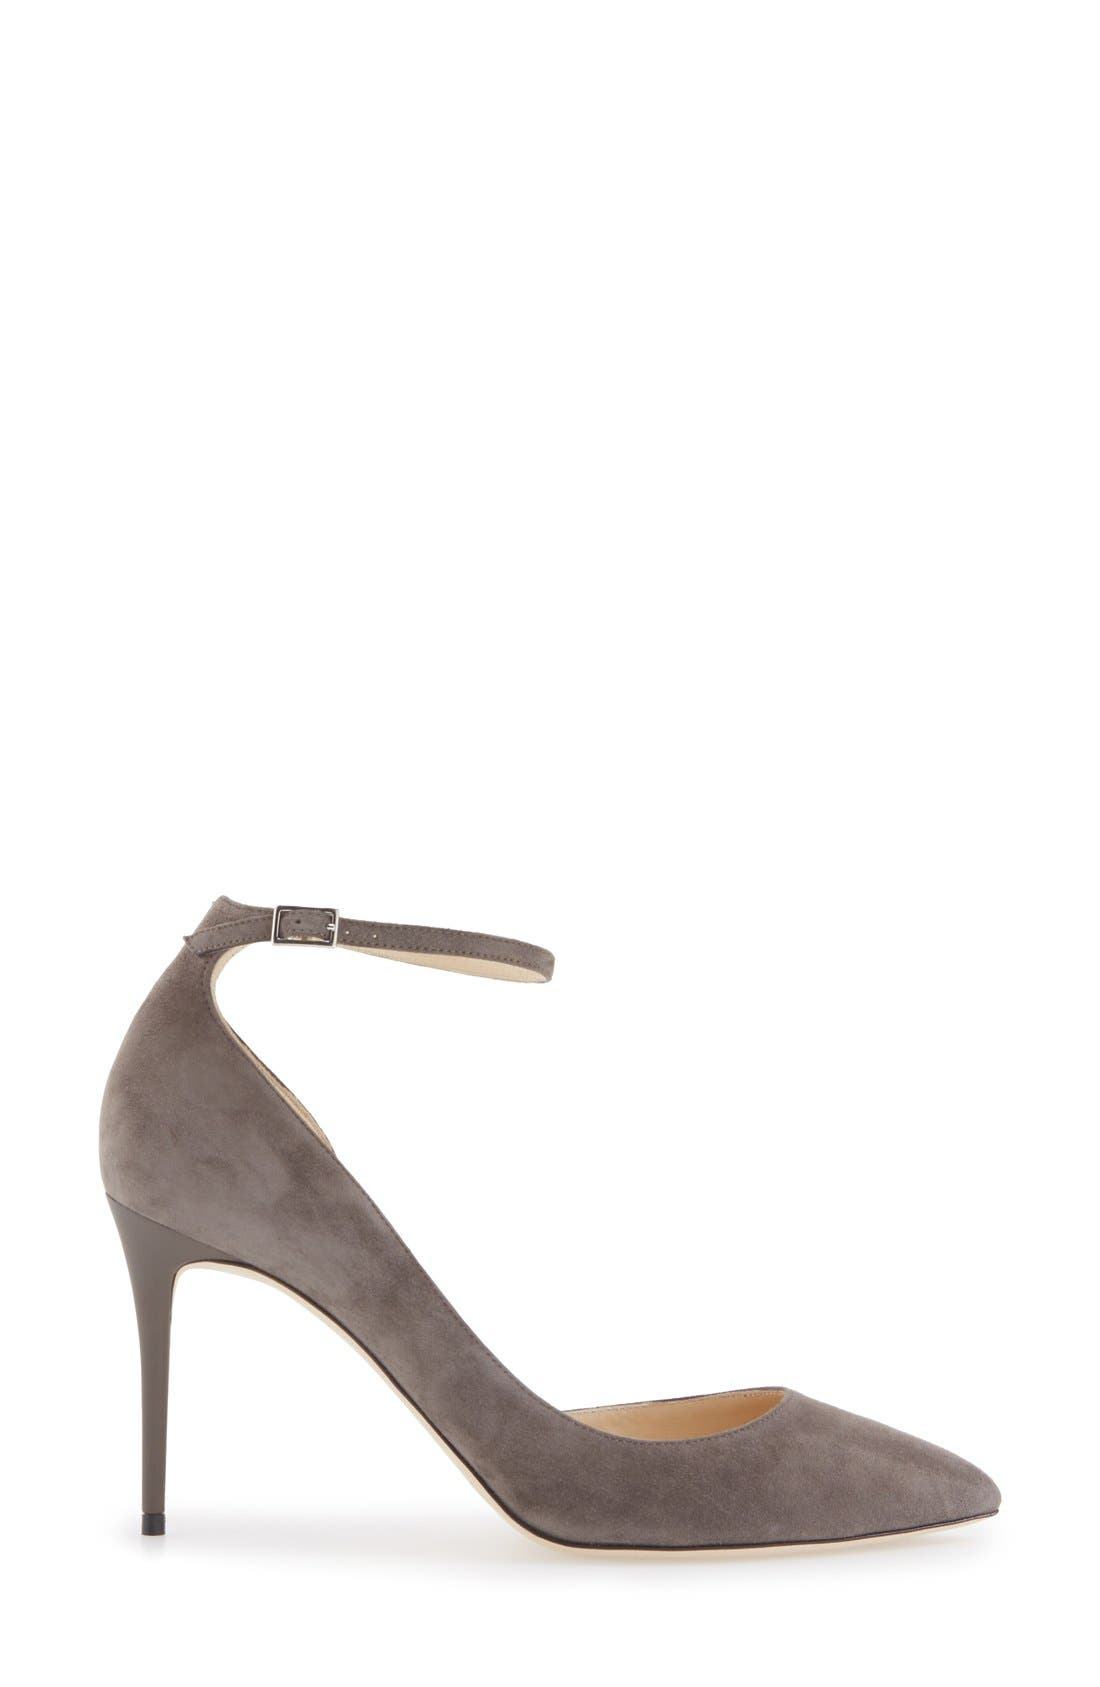 'Lucy' Half d'Orsay Pointy Toe Pump,                             Alternate thumbnail 4, color,                             Taupe Grey Suede